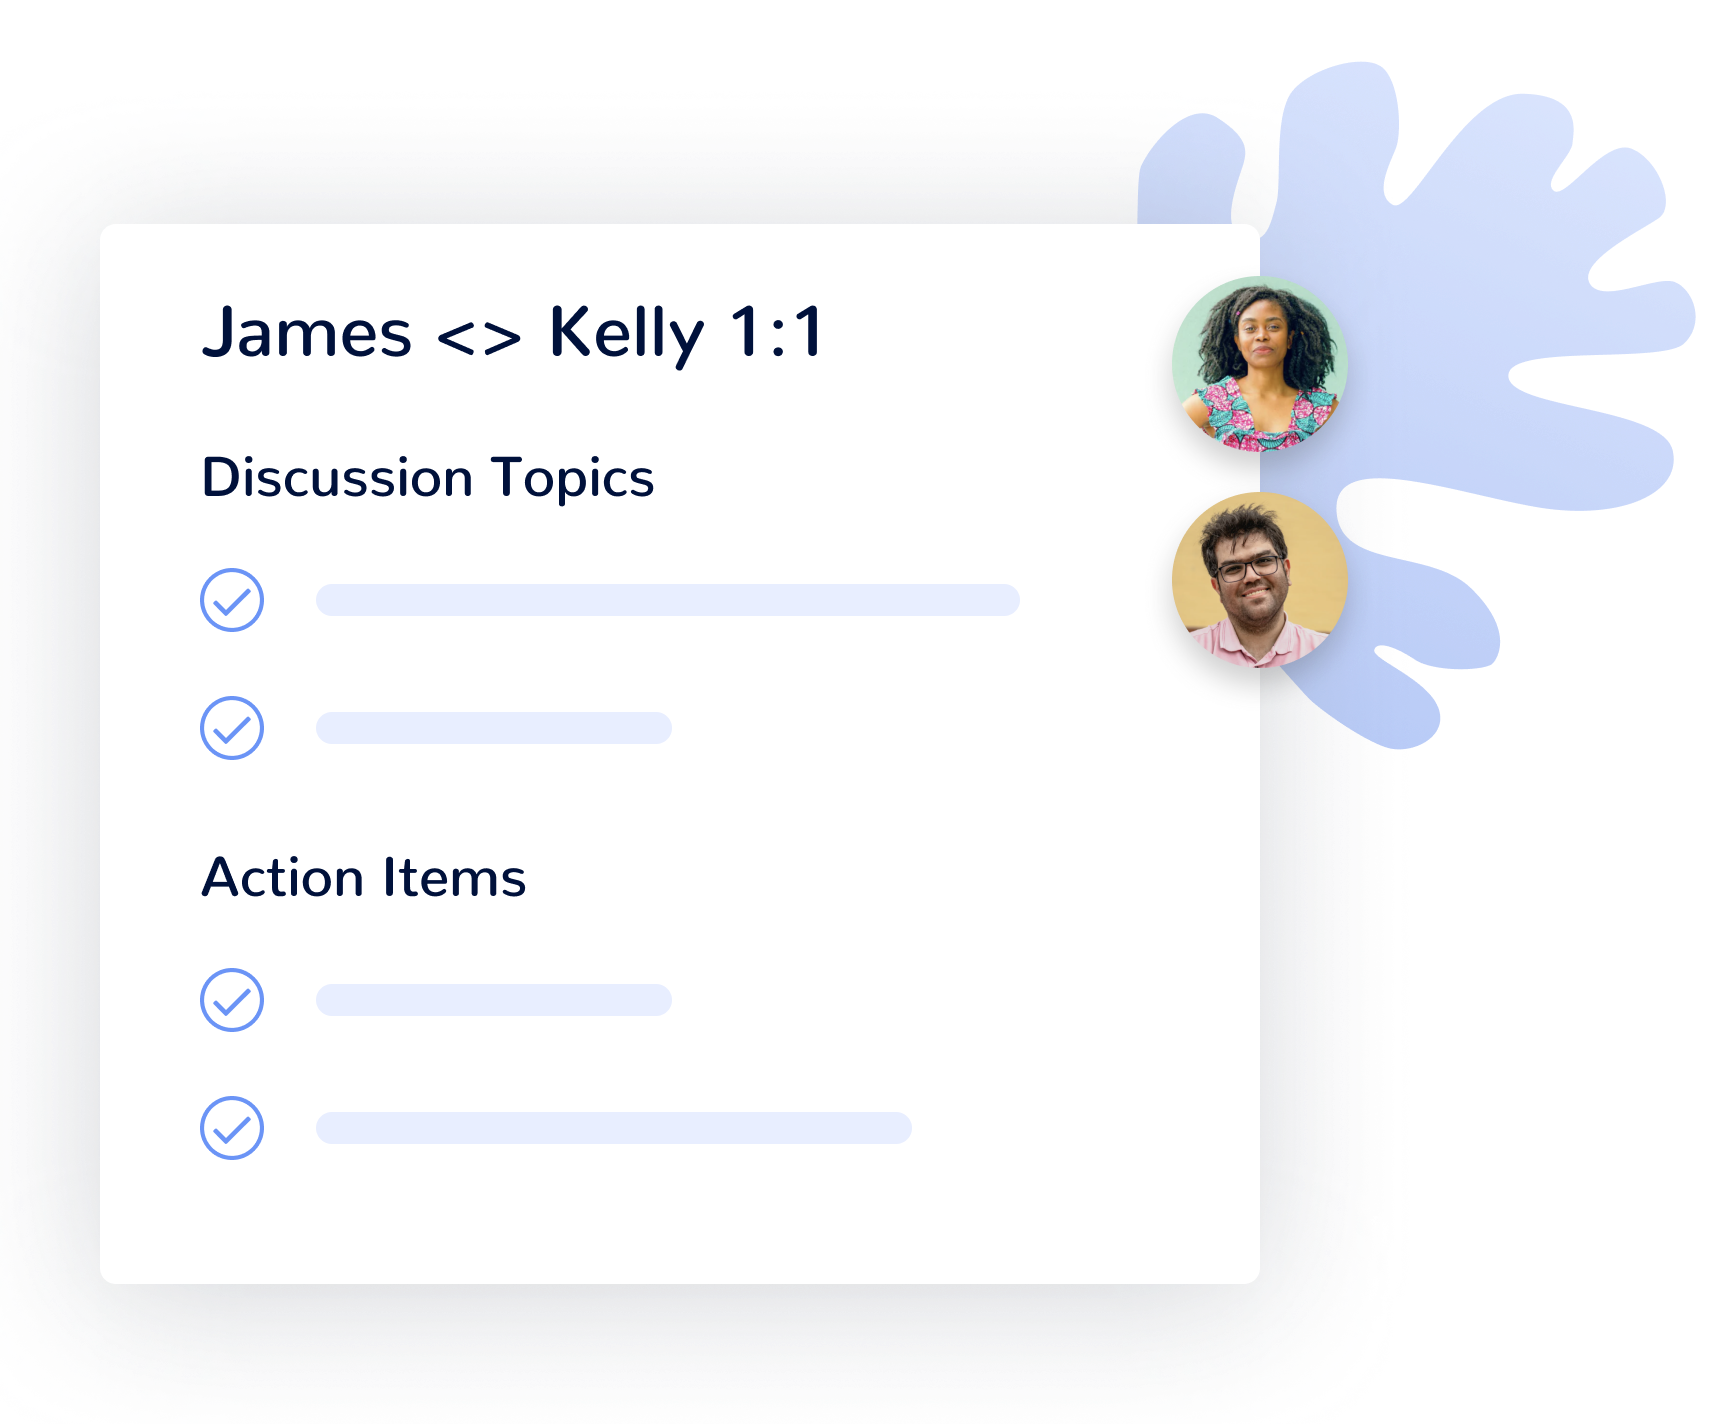 Agenda manager showing collaborative team functionality